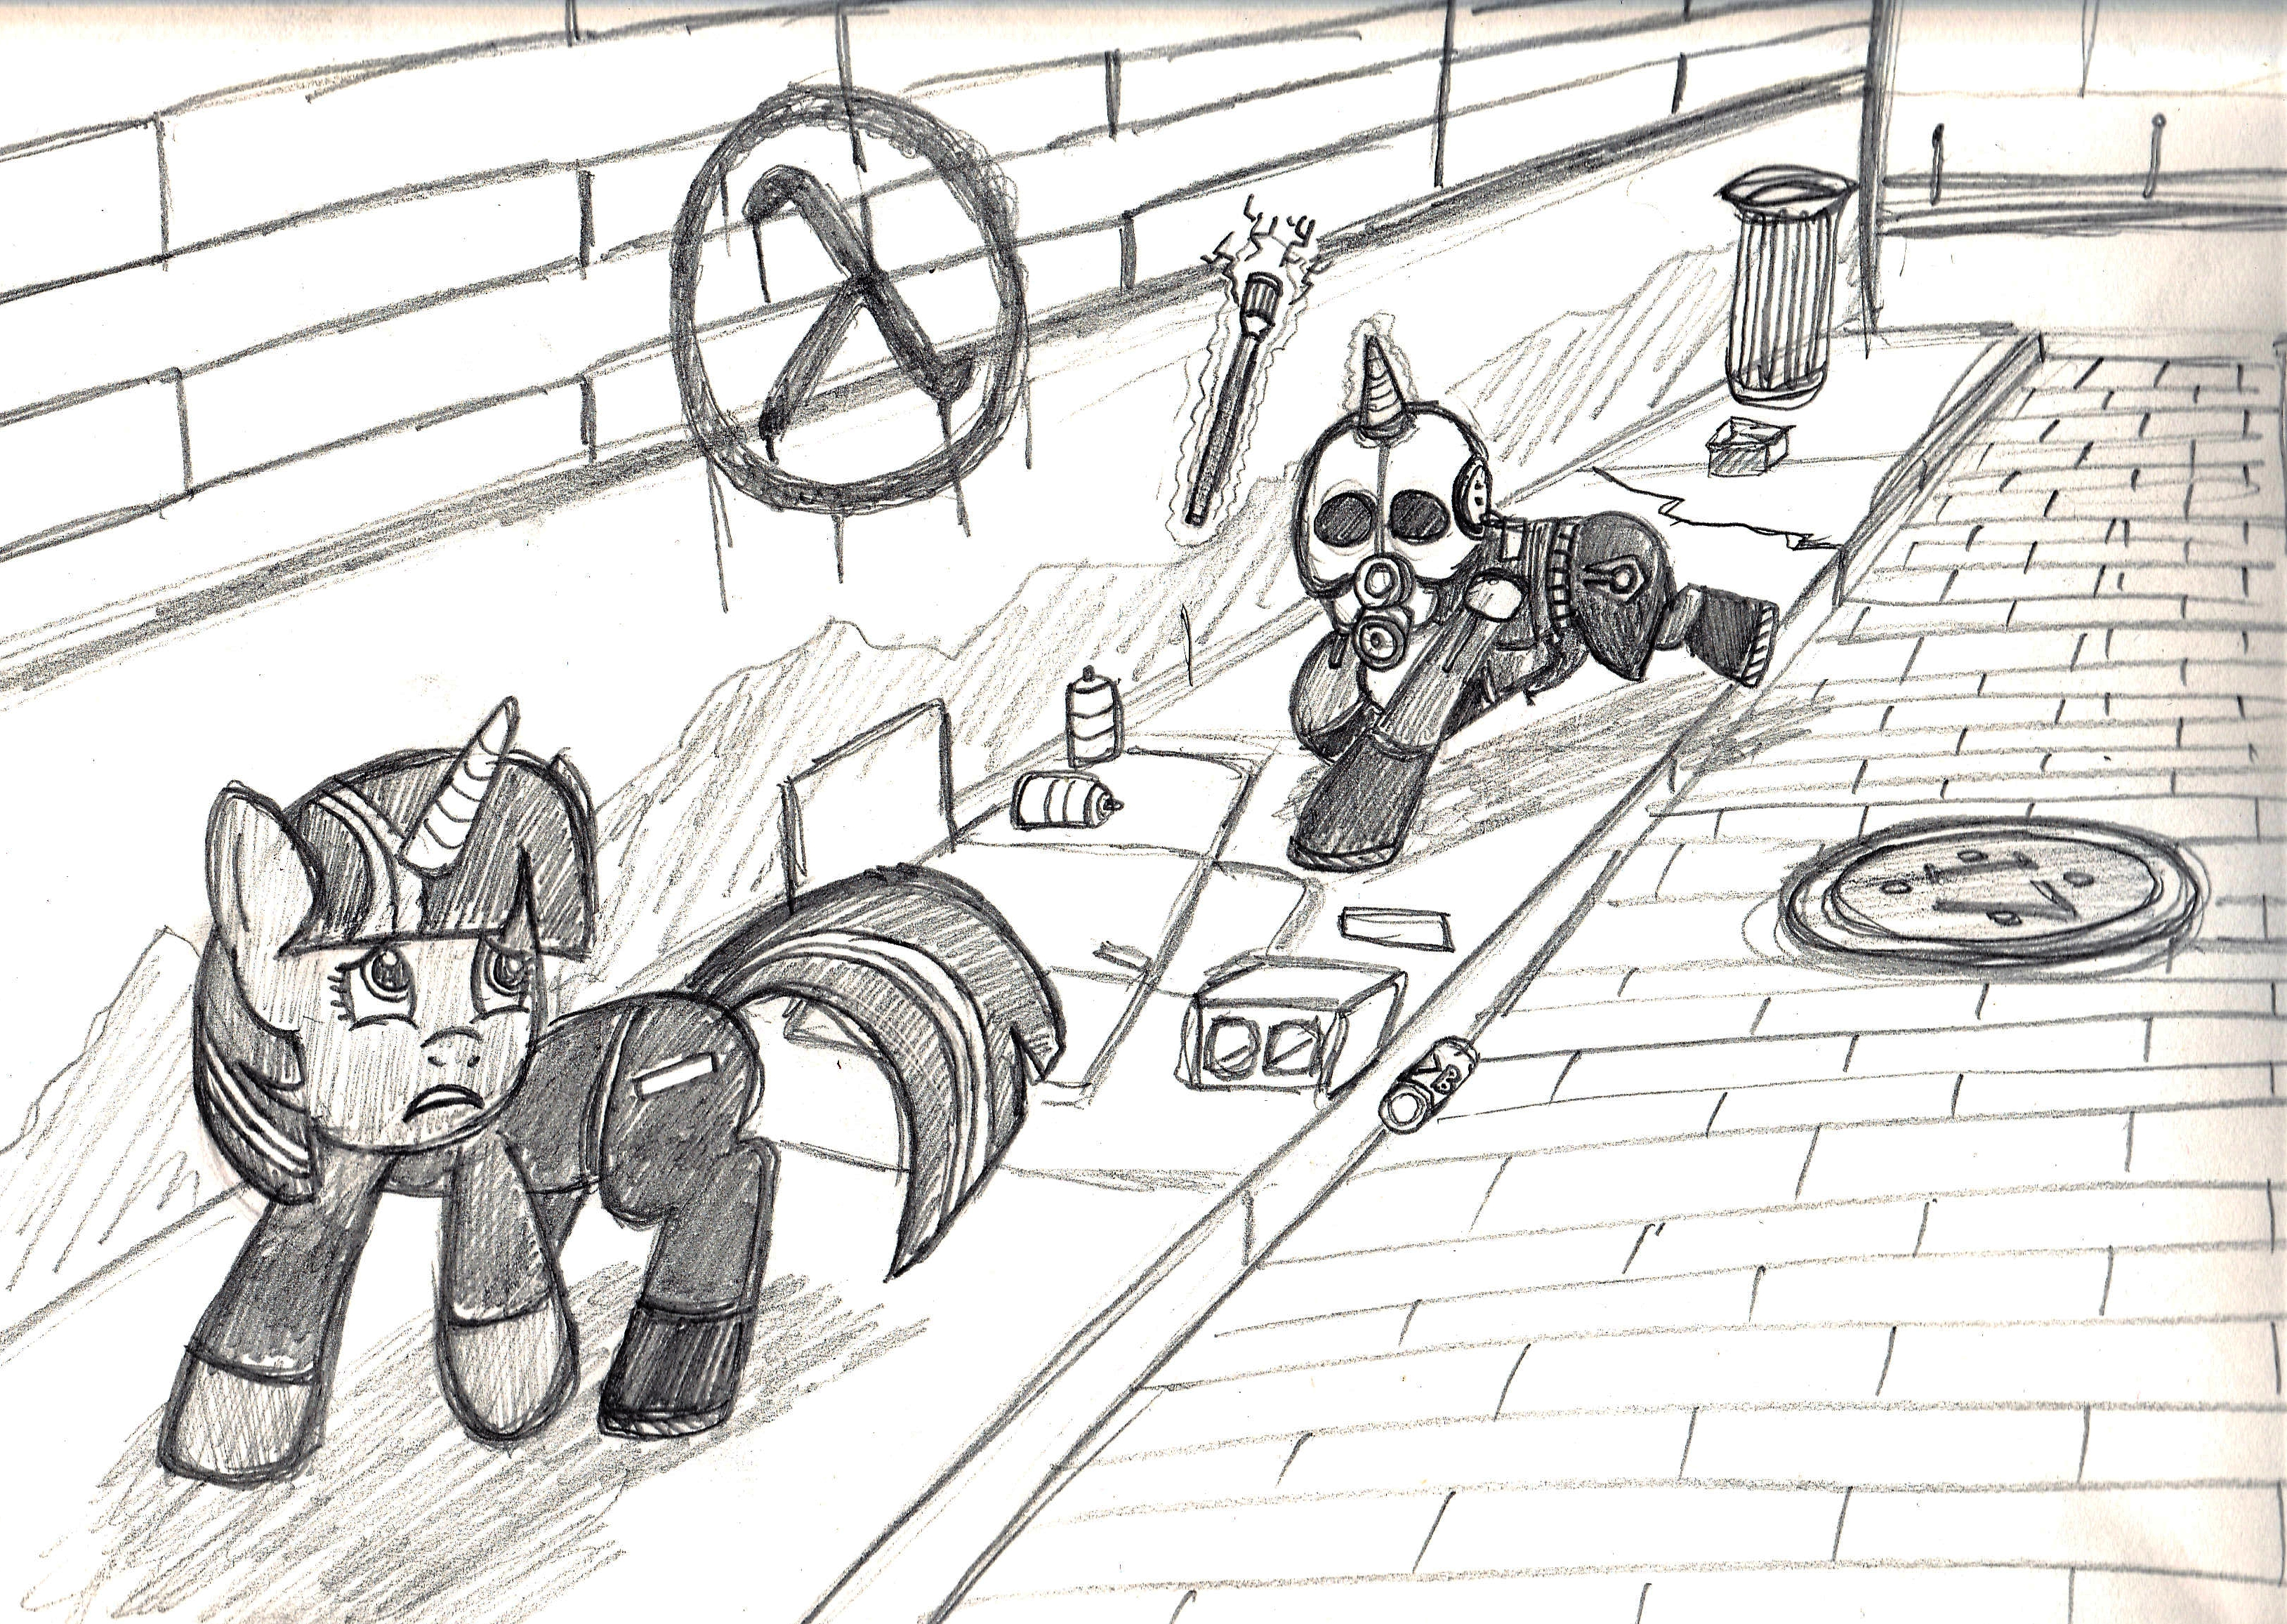 Issuing Malcompliant Citation My Little Pony Friendship